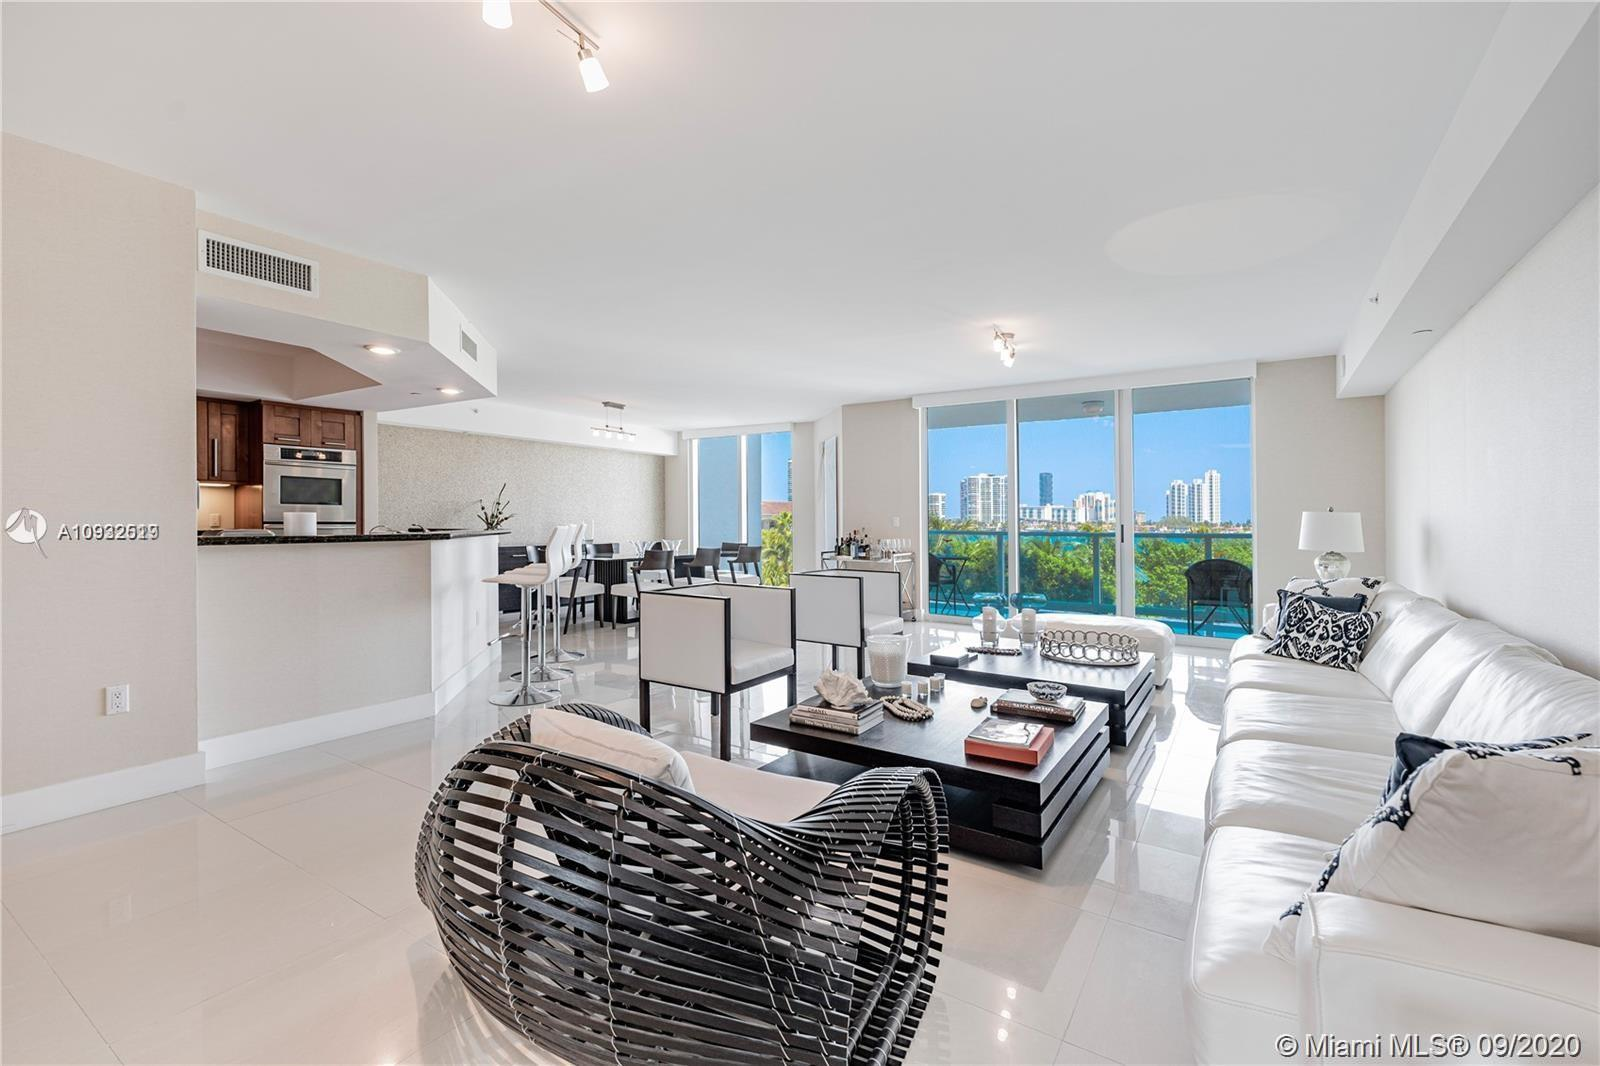 Spectacular view overlooking the Intracoastal, Sunny Isles, and pool. Bright 3 Bedrooms + Big Den an